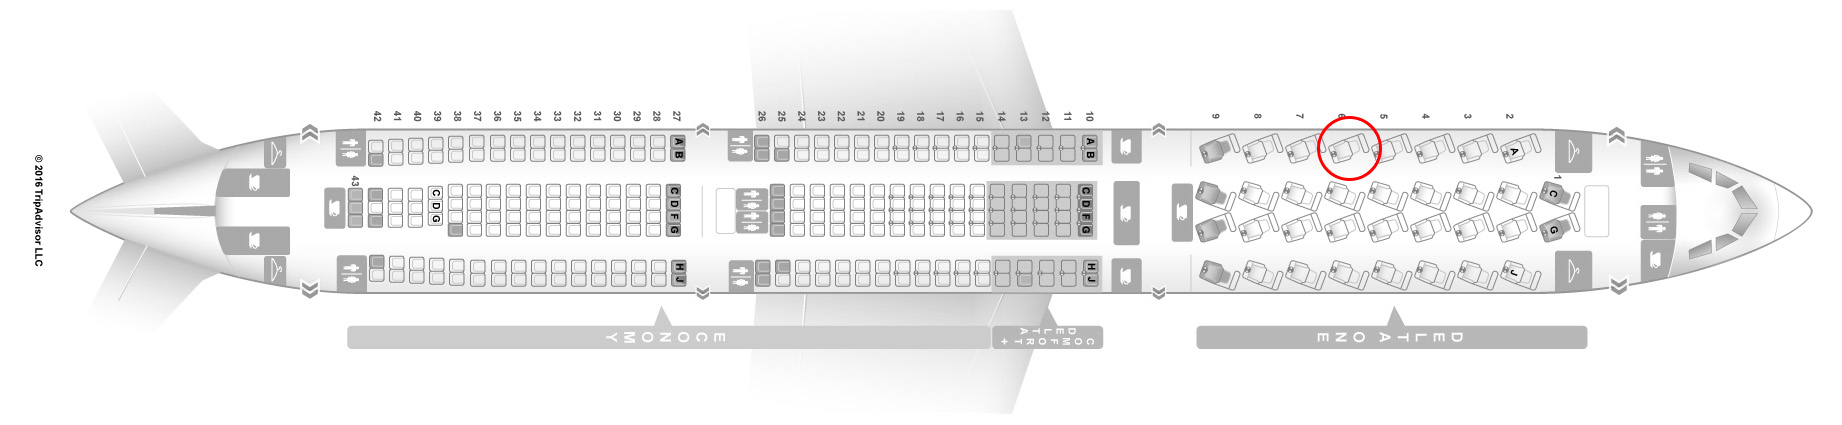 delta A330-300 seat map